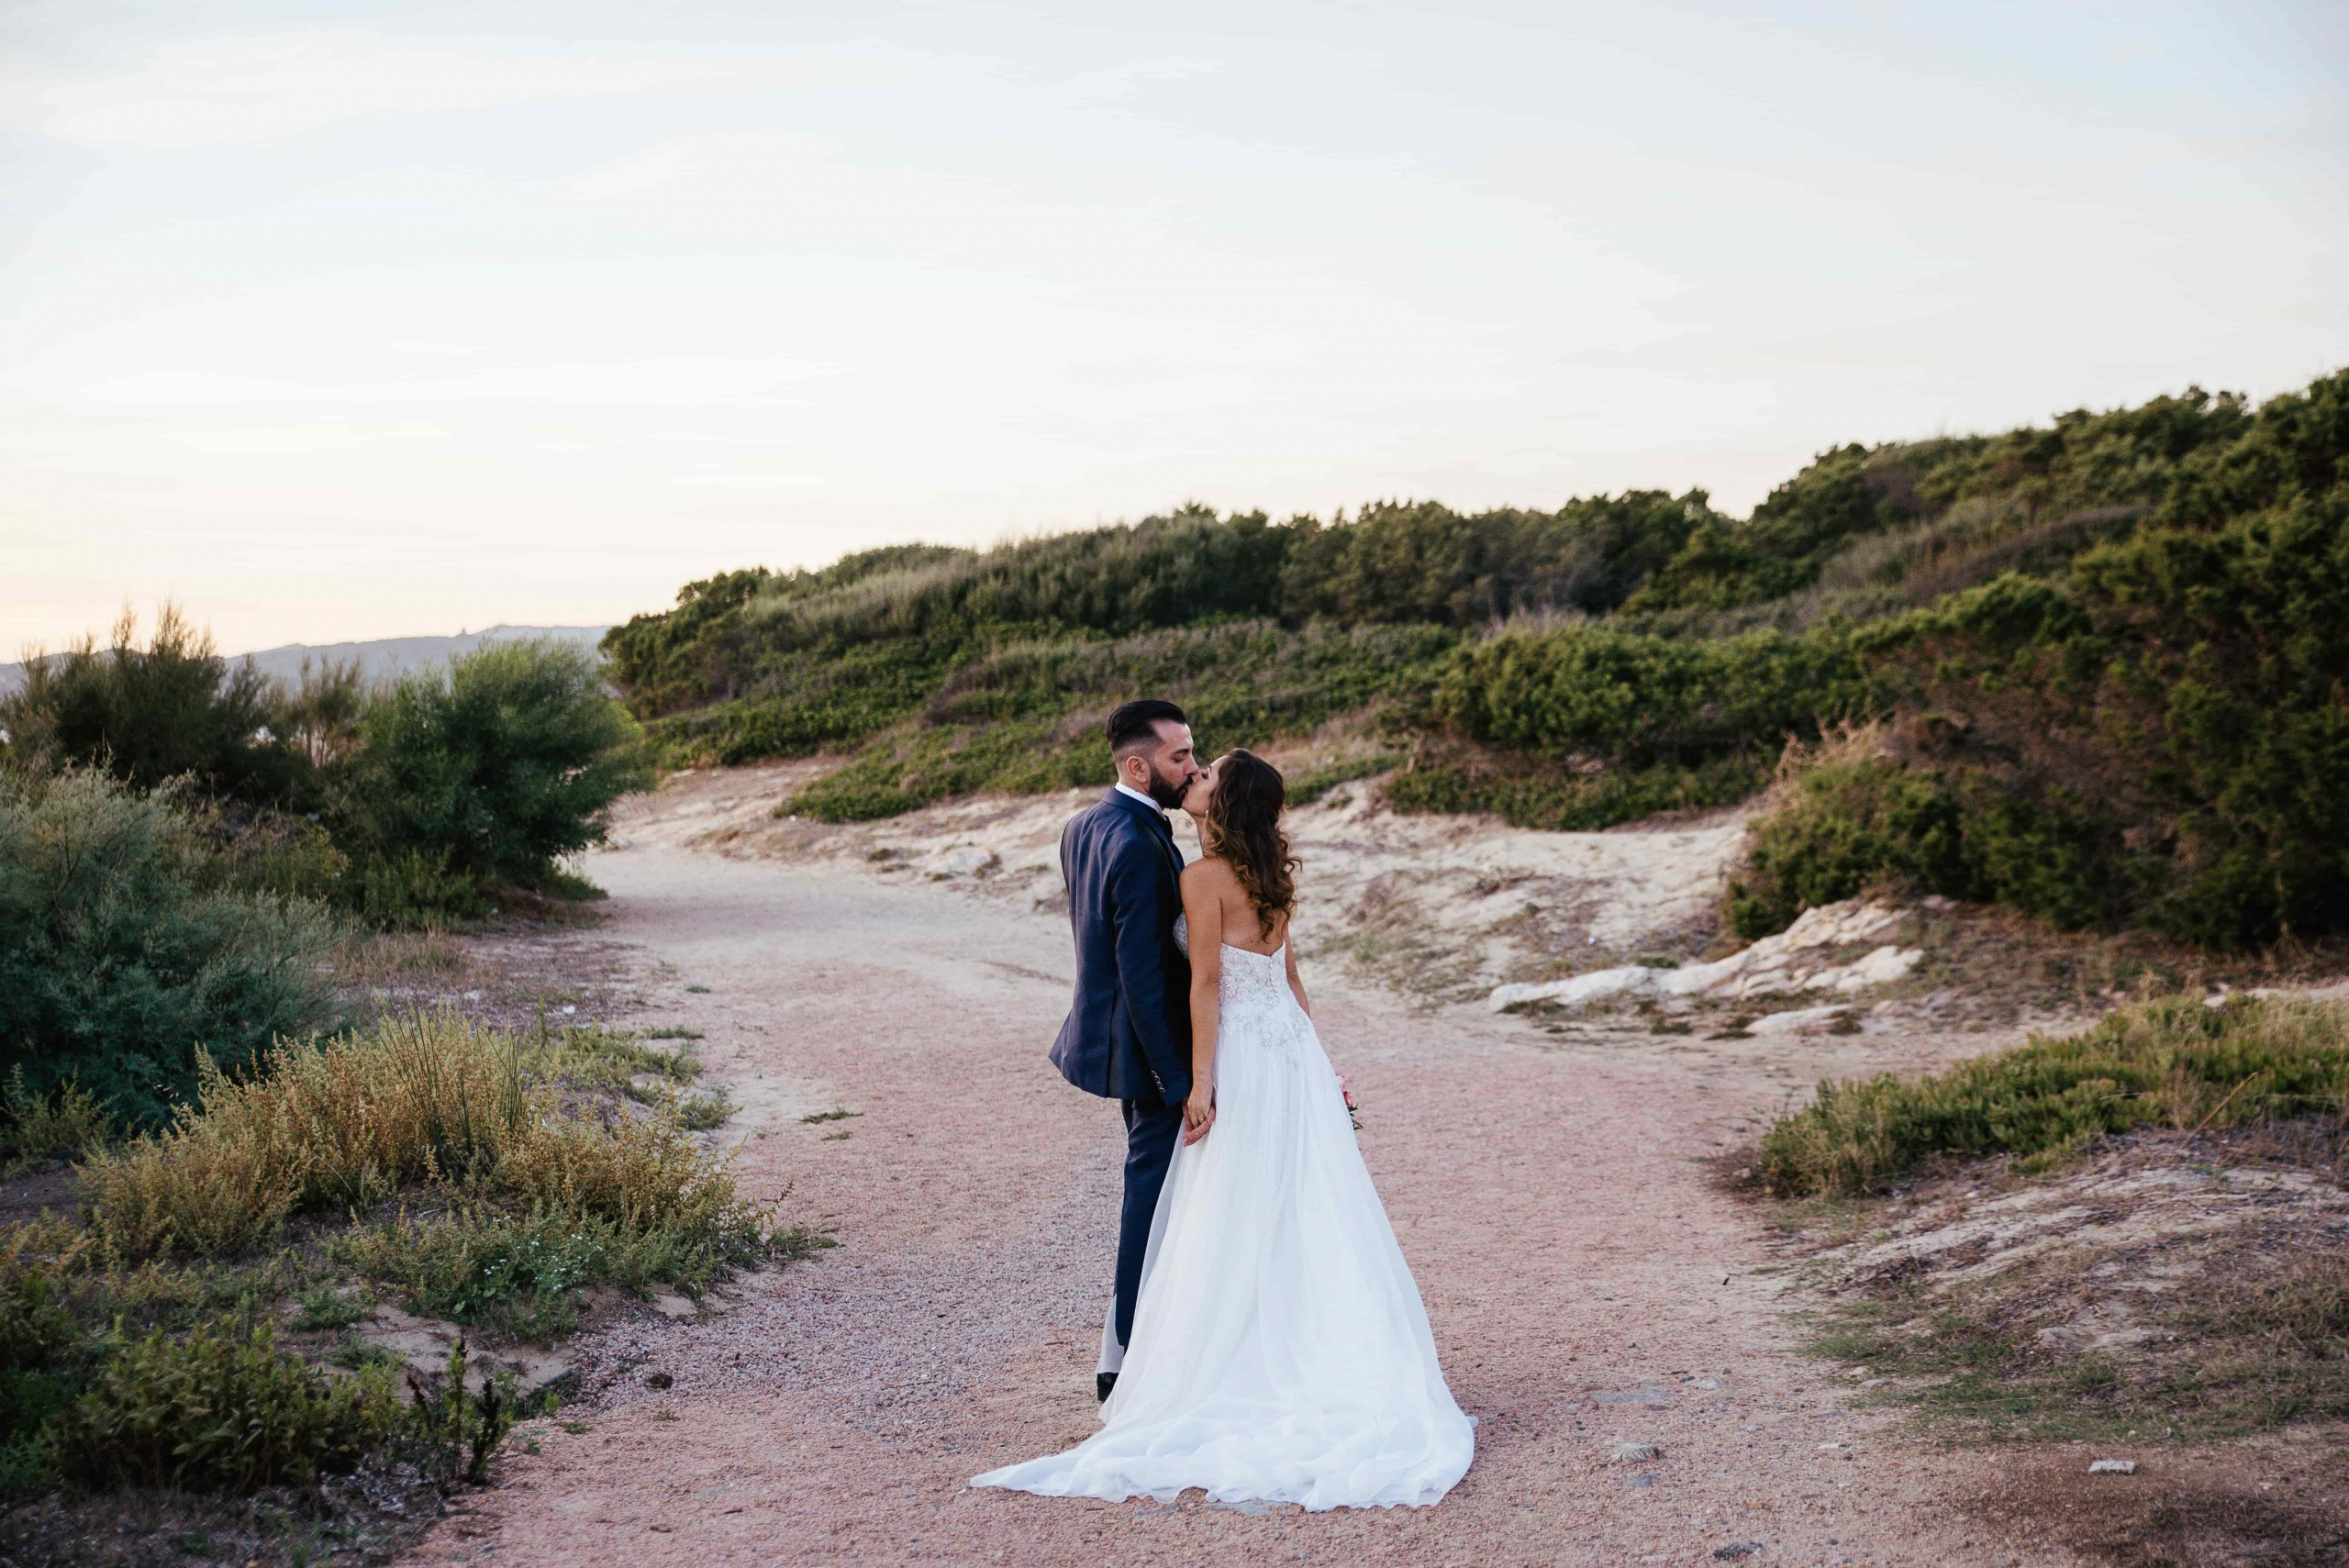 Destination Wedding Photographer in Sardinia Italy